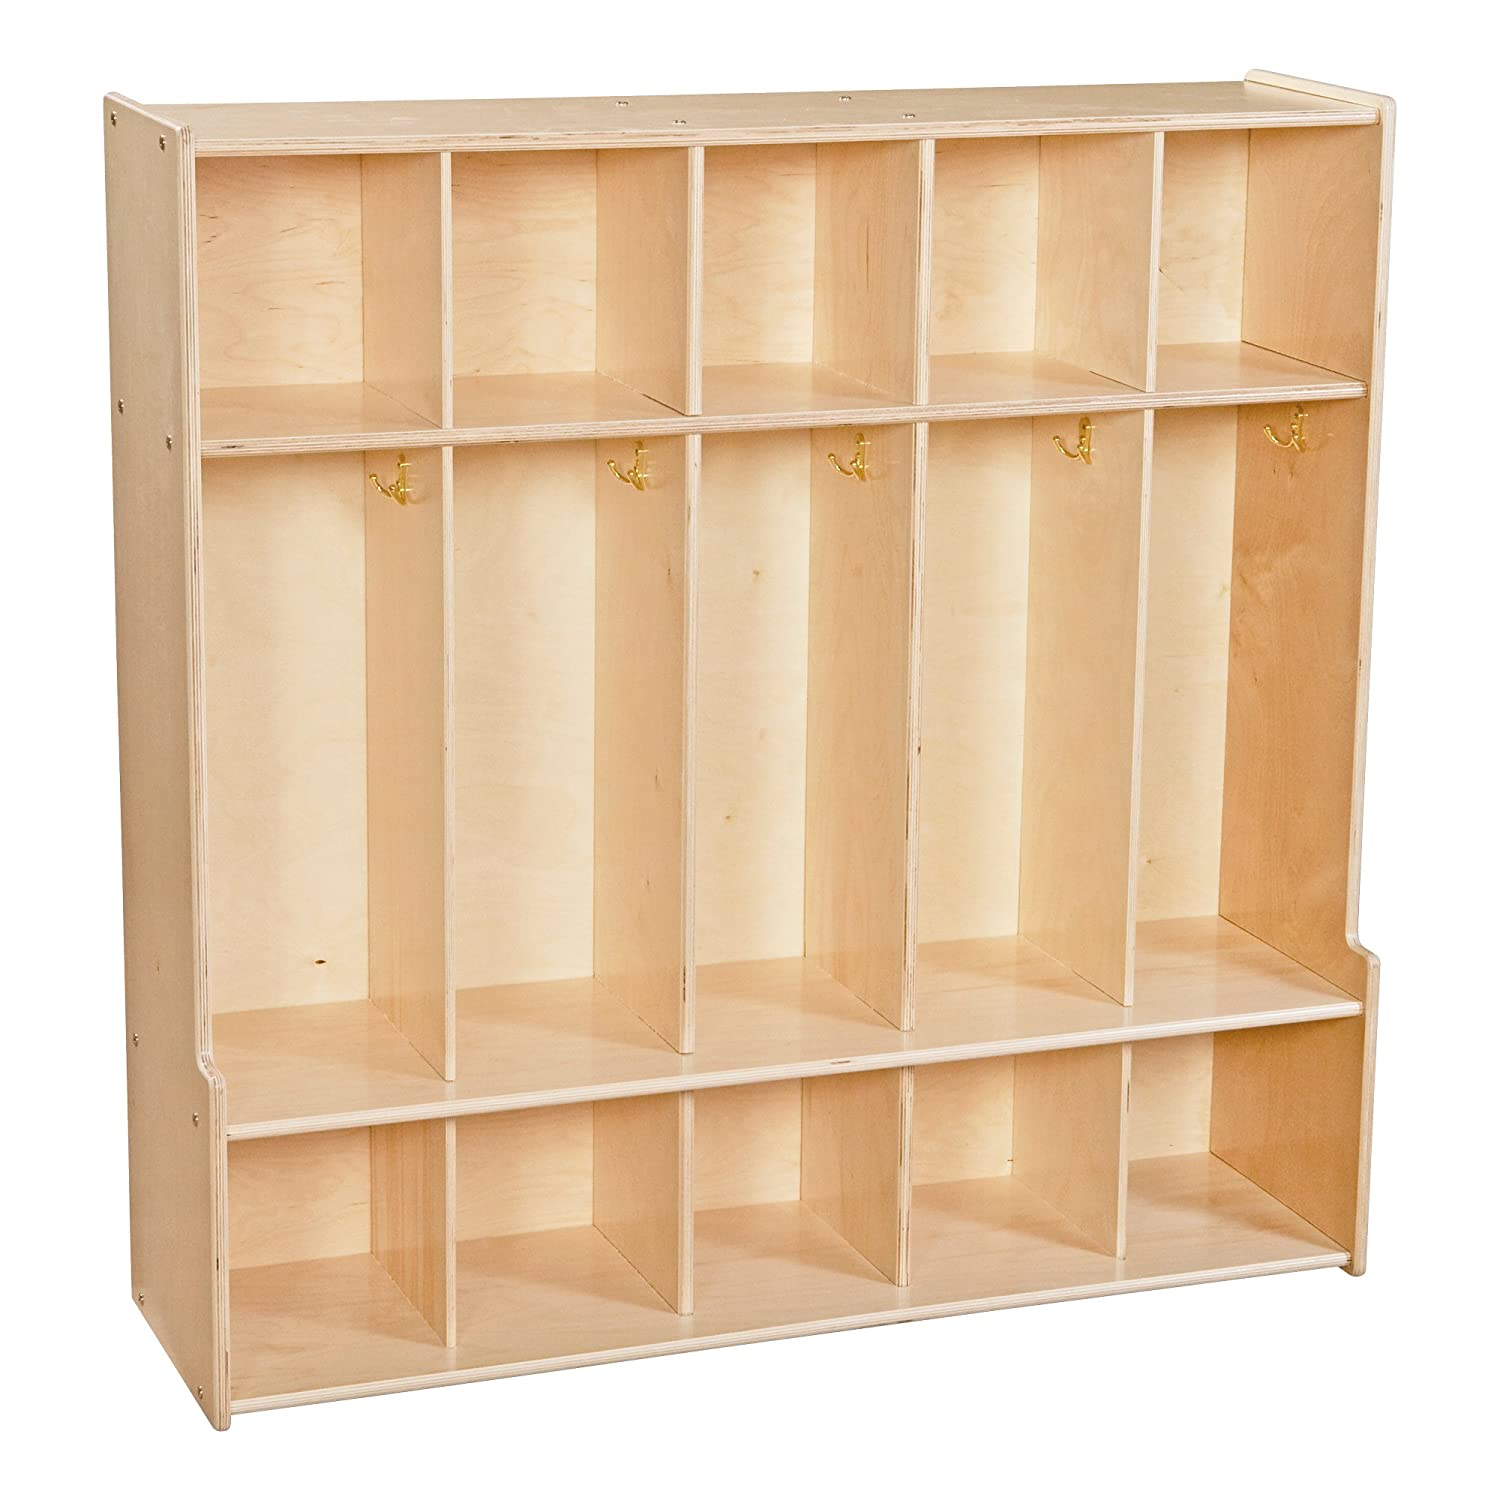 Unassembled Sprogs Wooden Five-Section Locker Unit with Seat SPG-4185